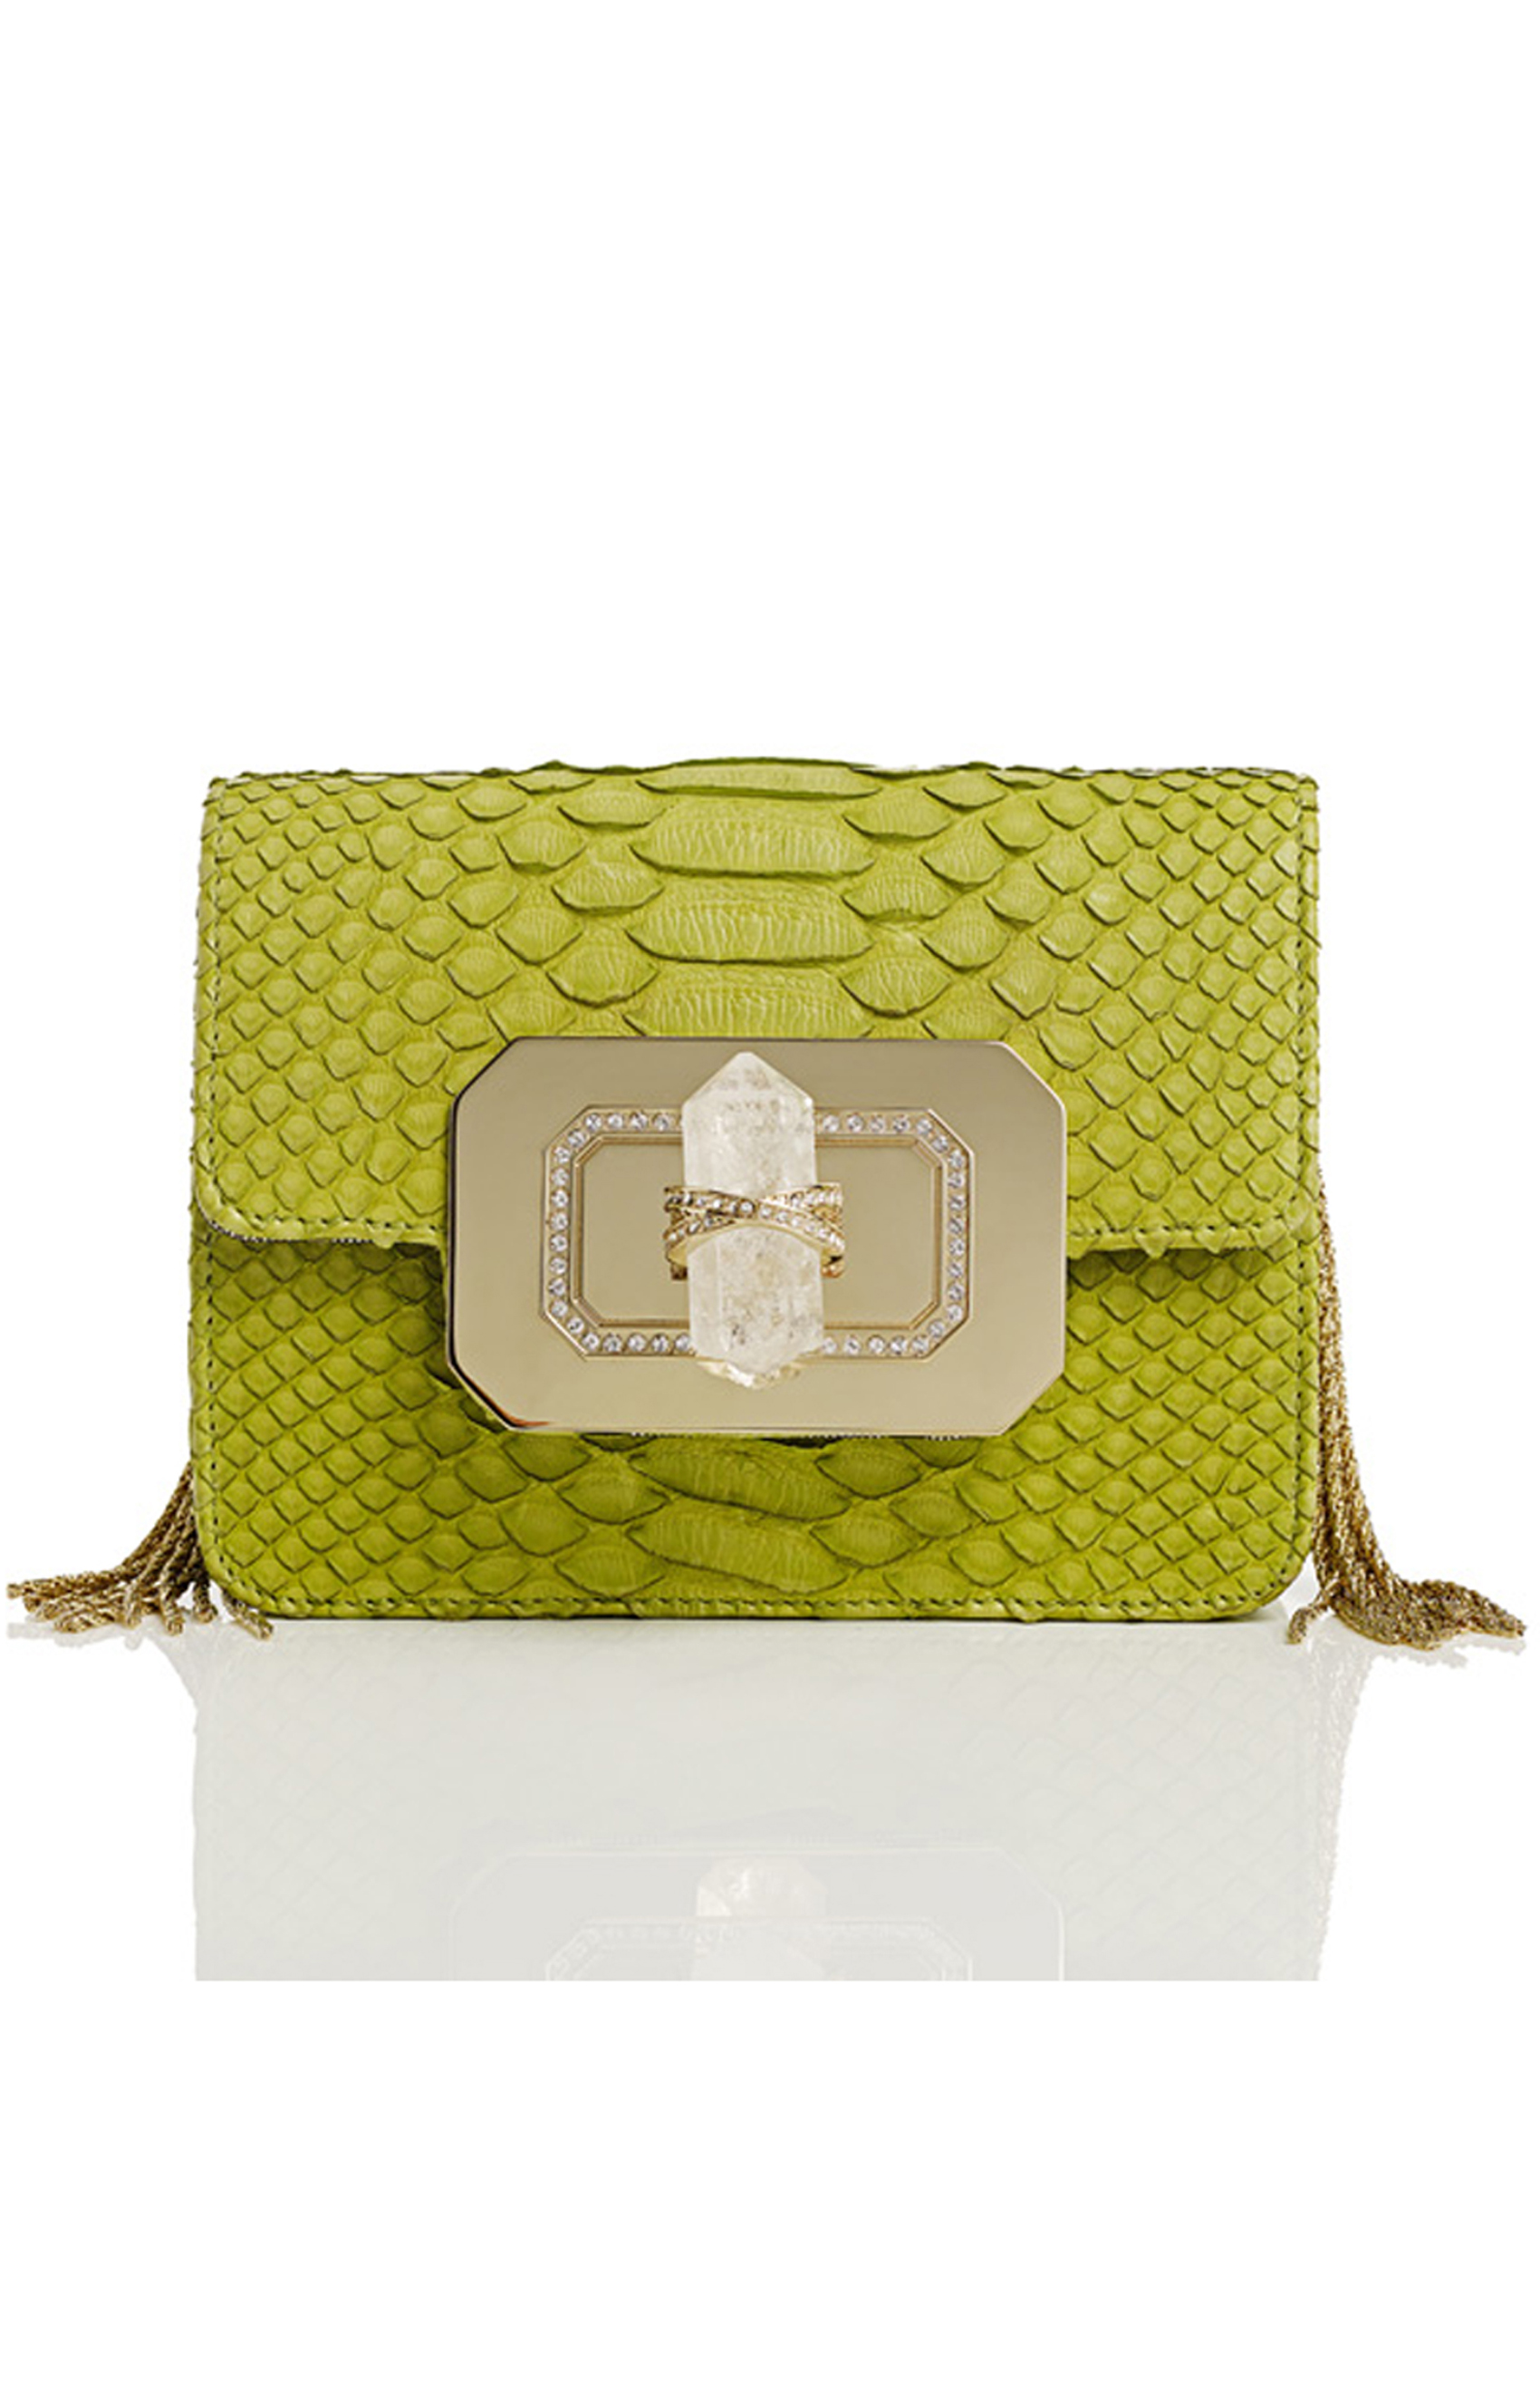 Marchesa <br>Handbag 12